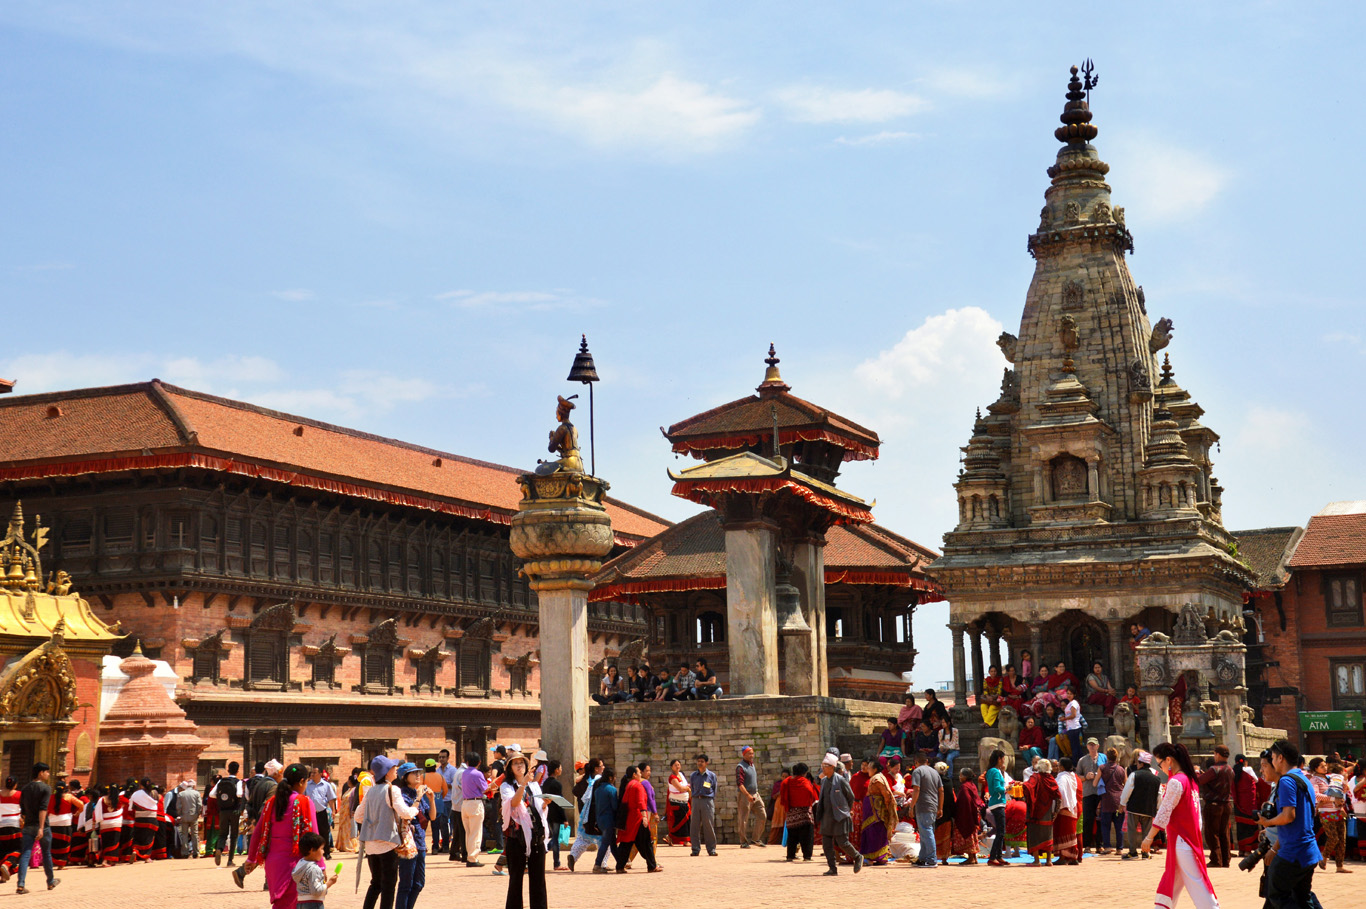 Bhaktapur Durbar Square, from left to right: Golden Gate, 55 Windows Palace, The Big Bell and the tallest temple in the picture - Vatsala Temple (damaged by 2015 earthquake)